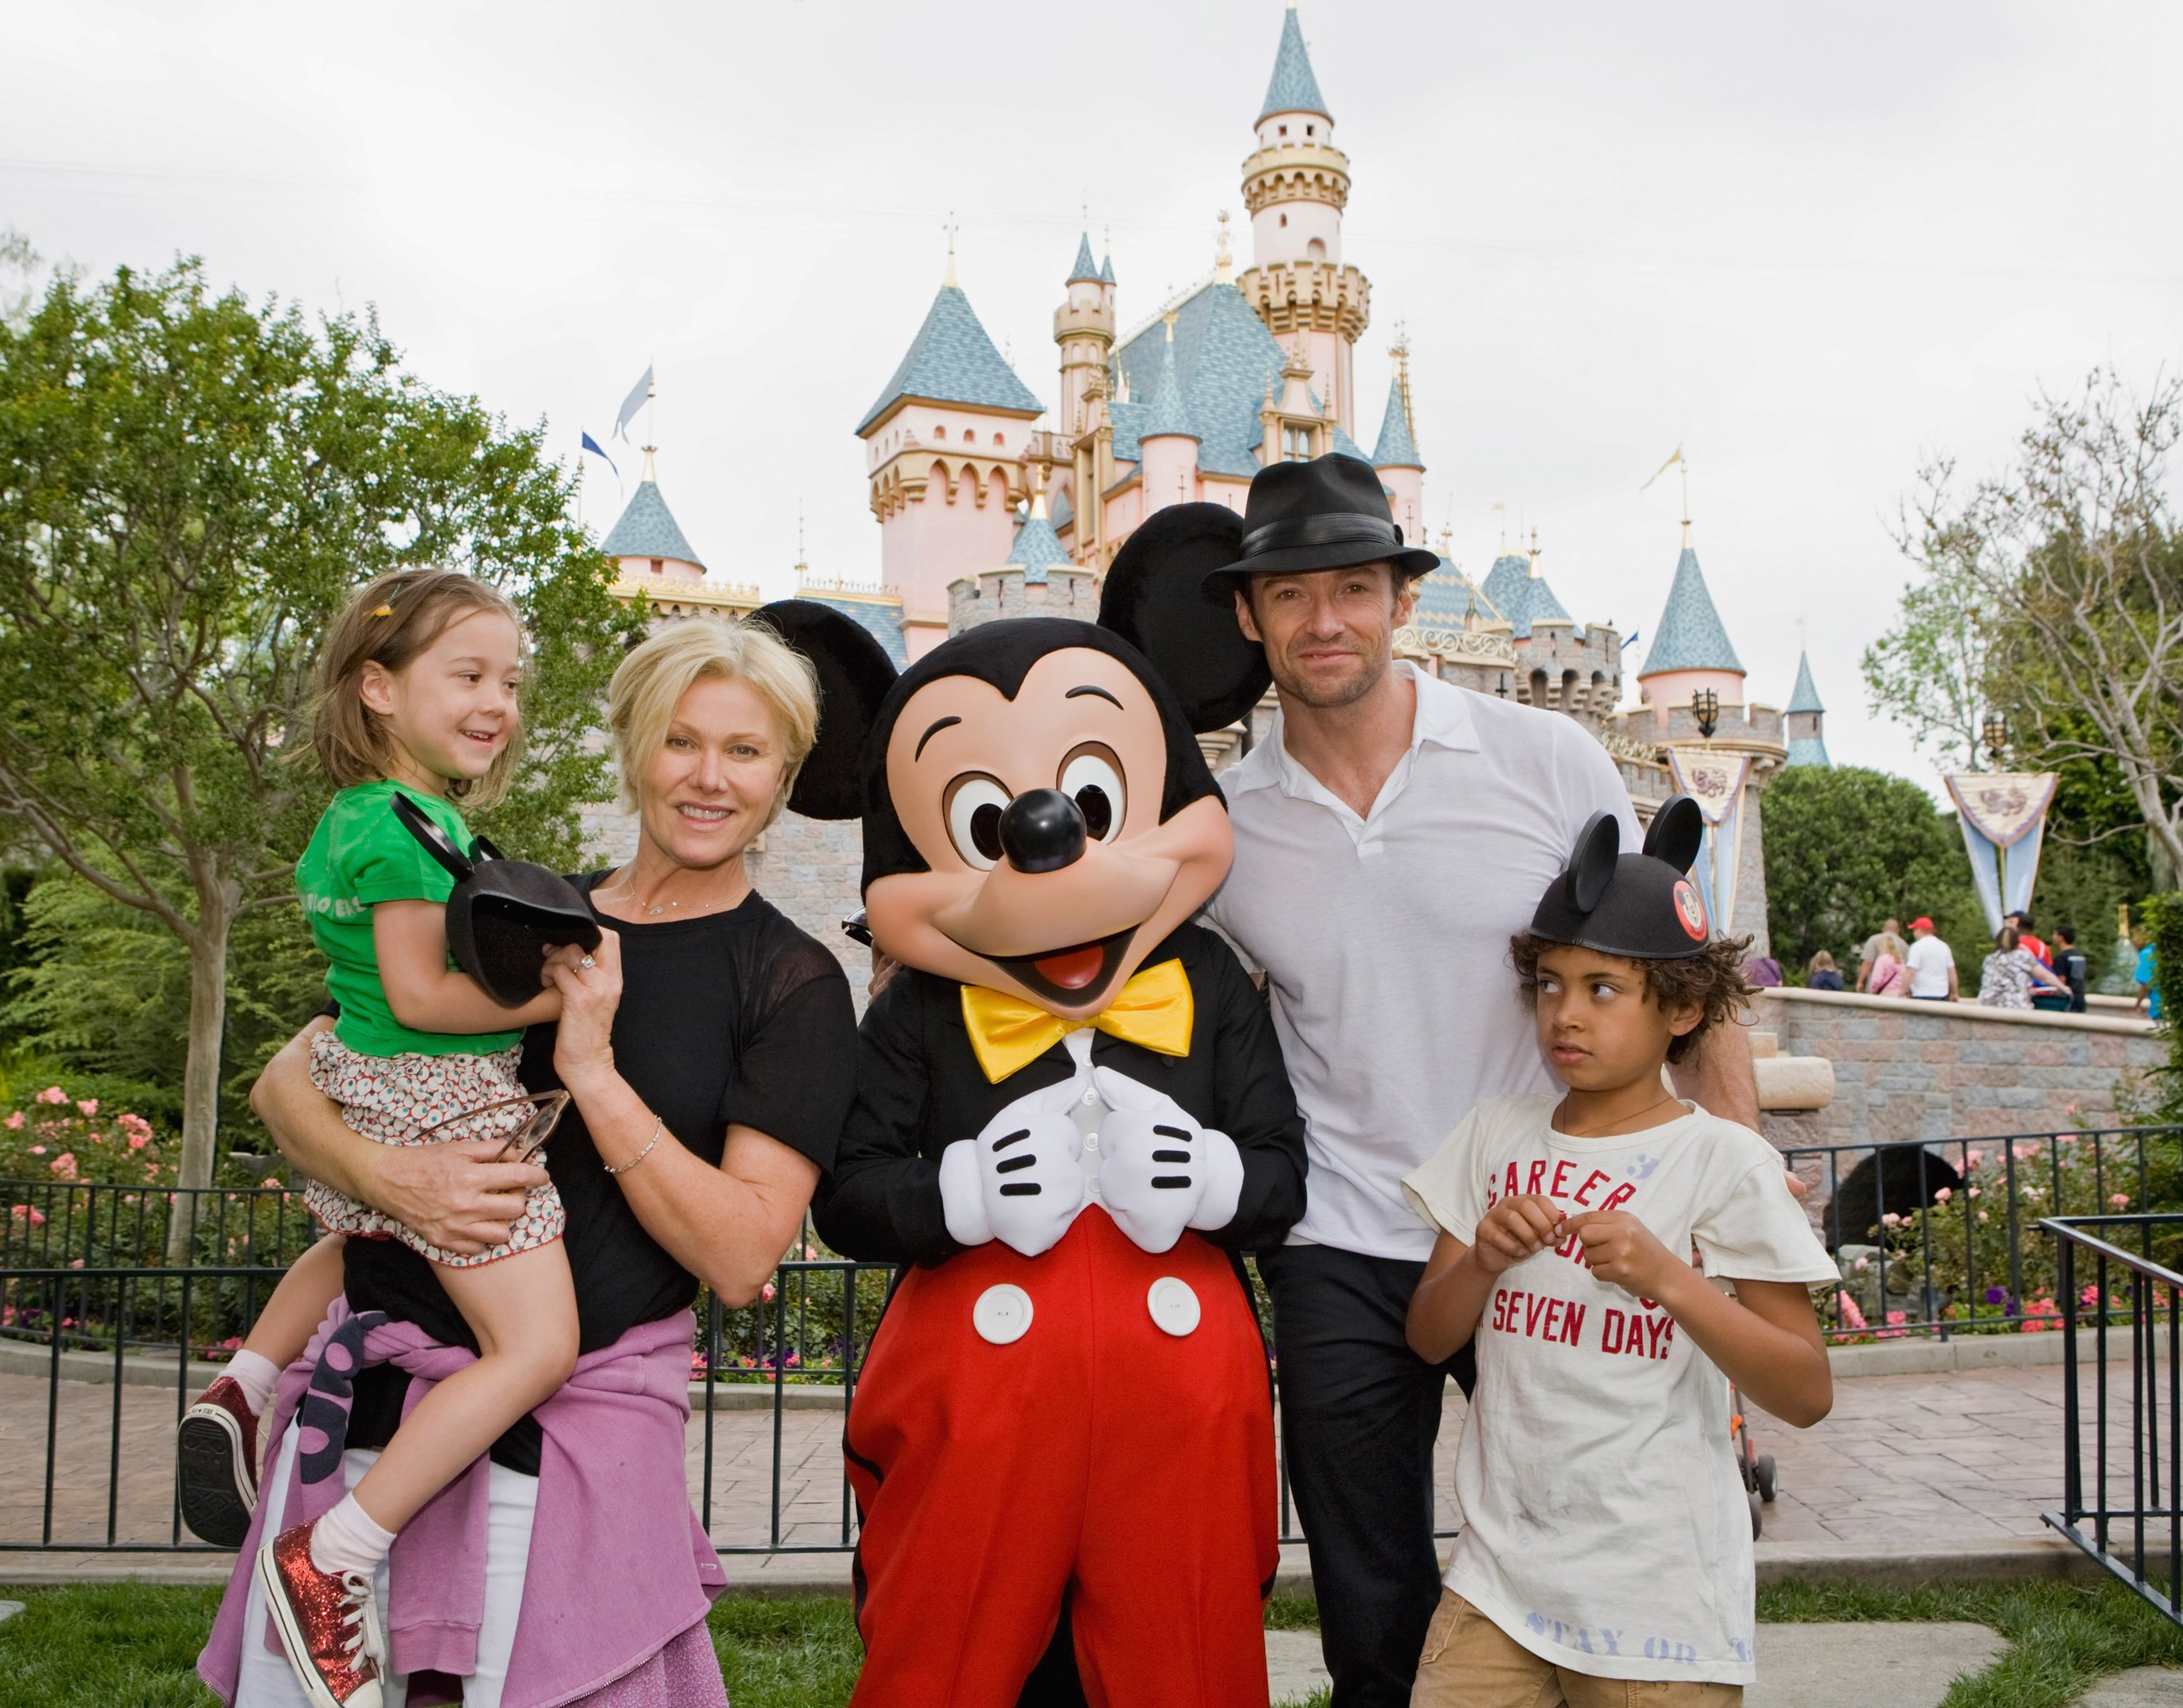 Hugh Jackman with wife Deborra Lee and kids Oscar and Ava at Disneyland in Anaheim, California on April 23, 2009 | Photo: Getty Images